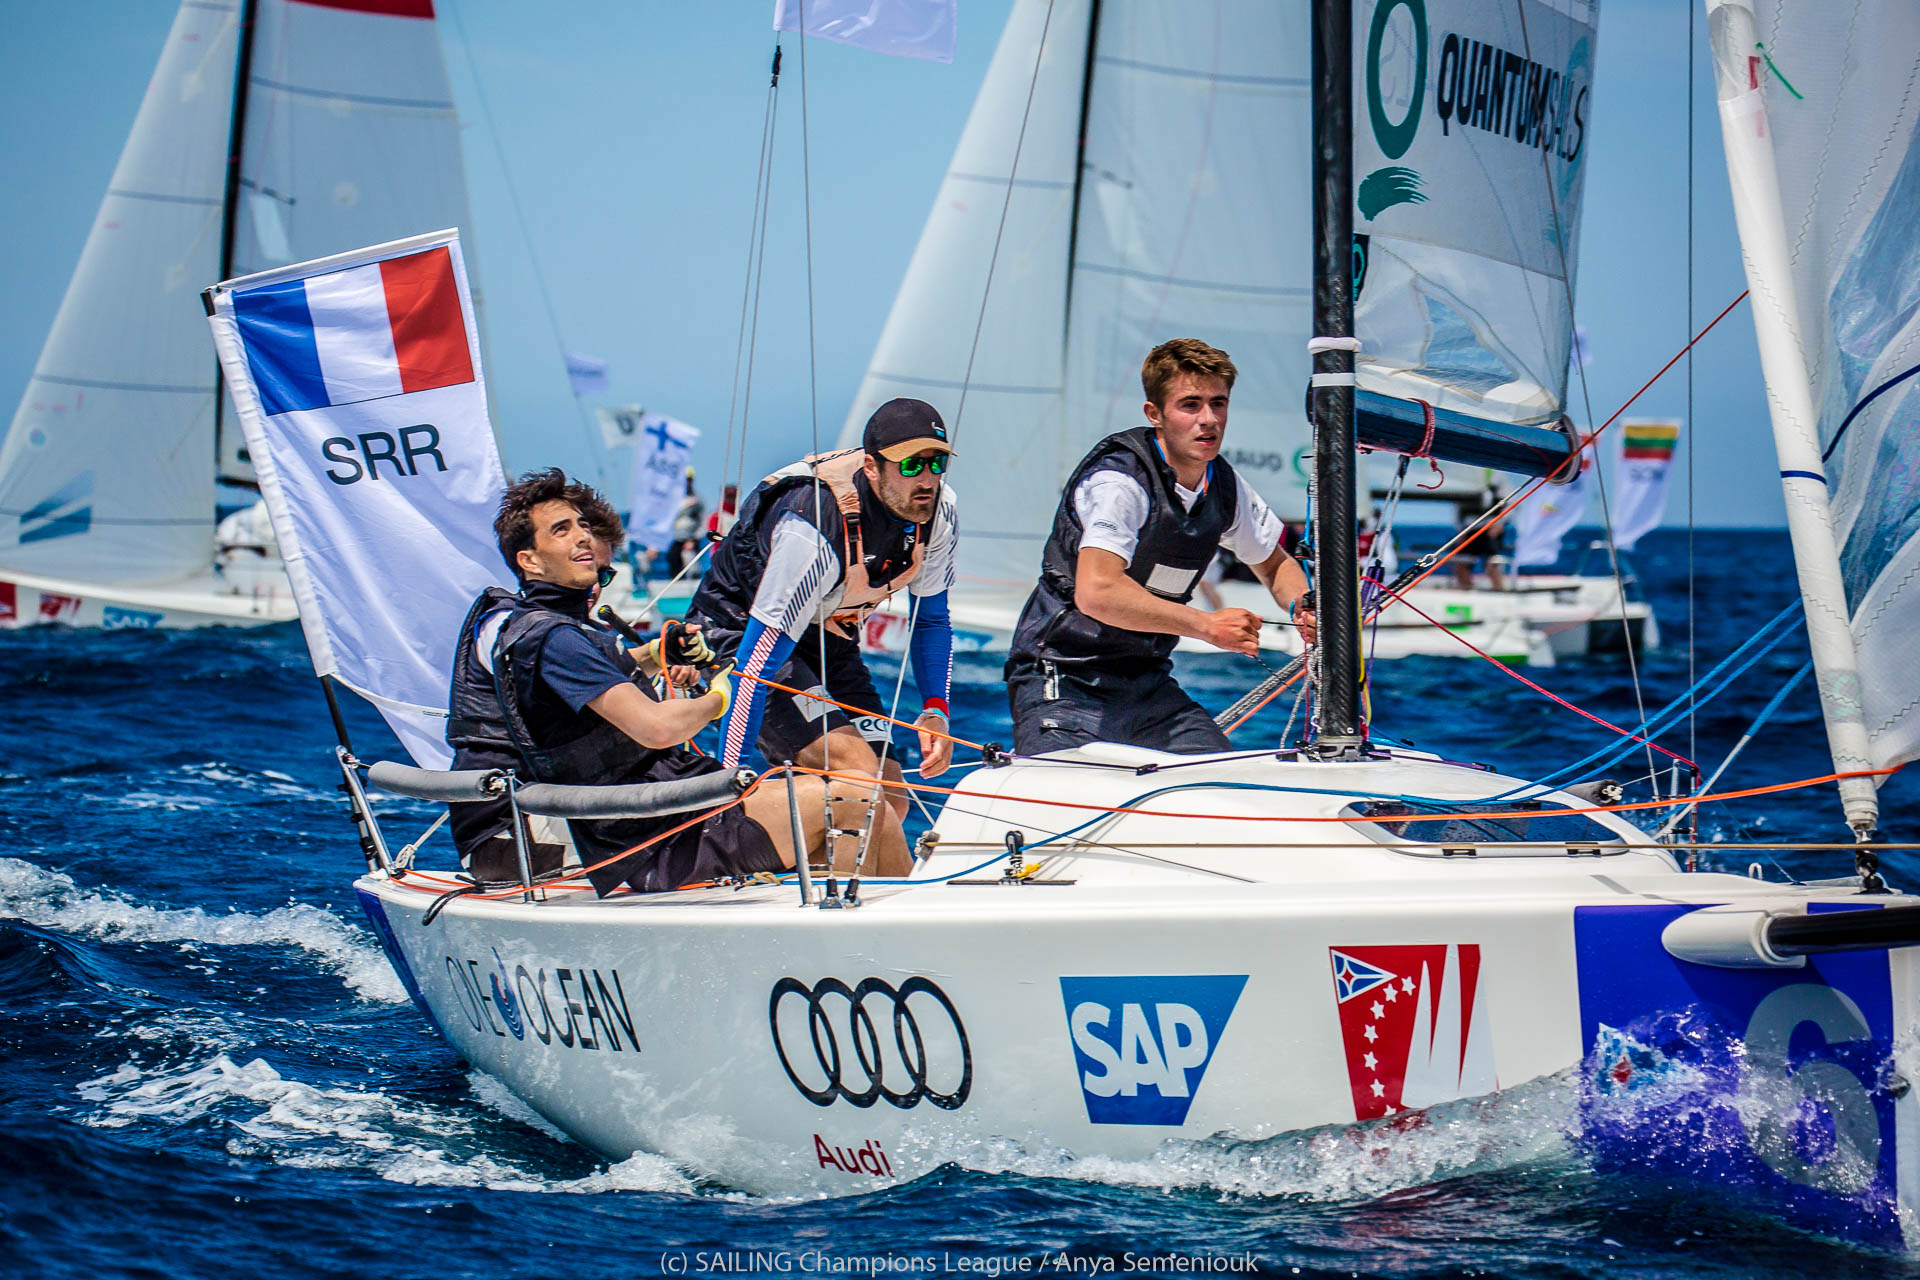 One Ocean Sailing Champions League – Images Day 2 online - NEWS - Yacht Club Costa Smeralda